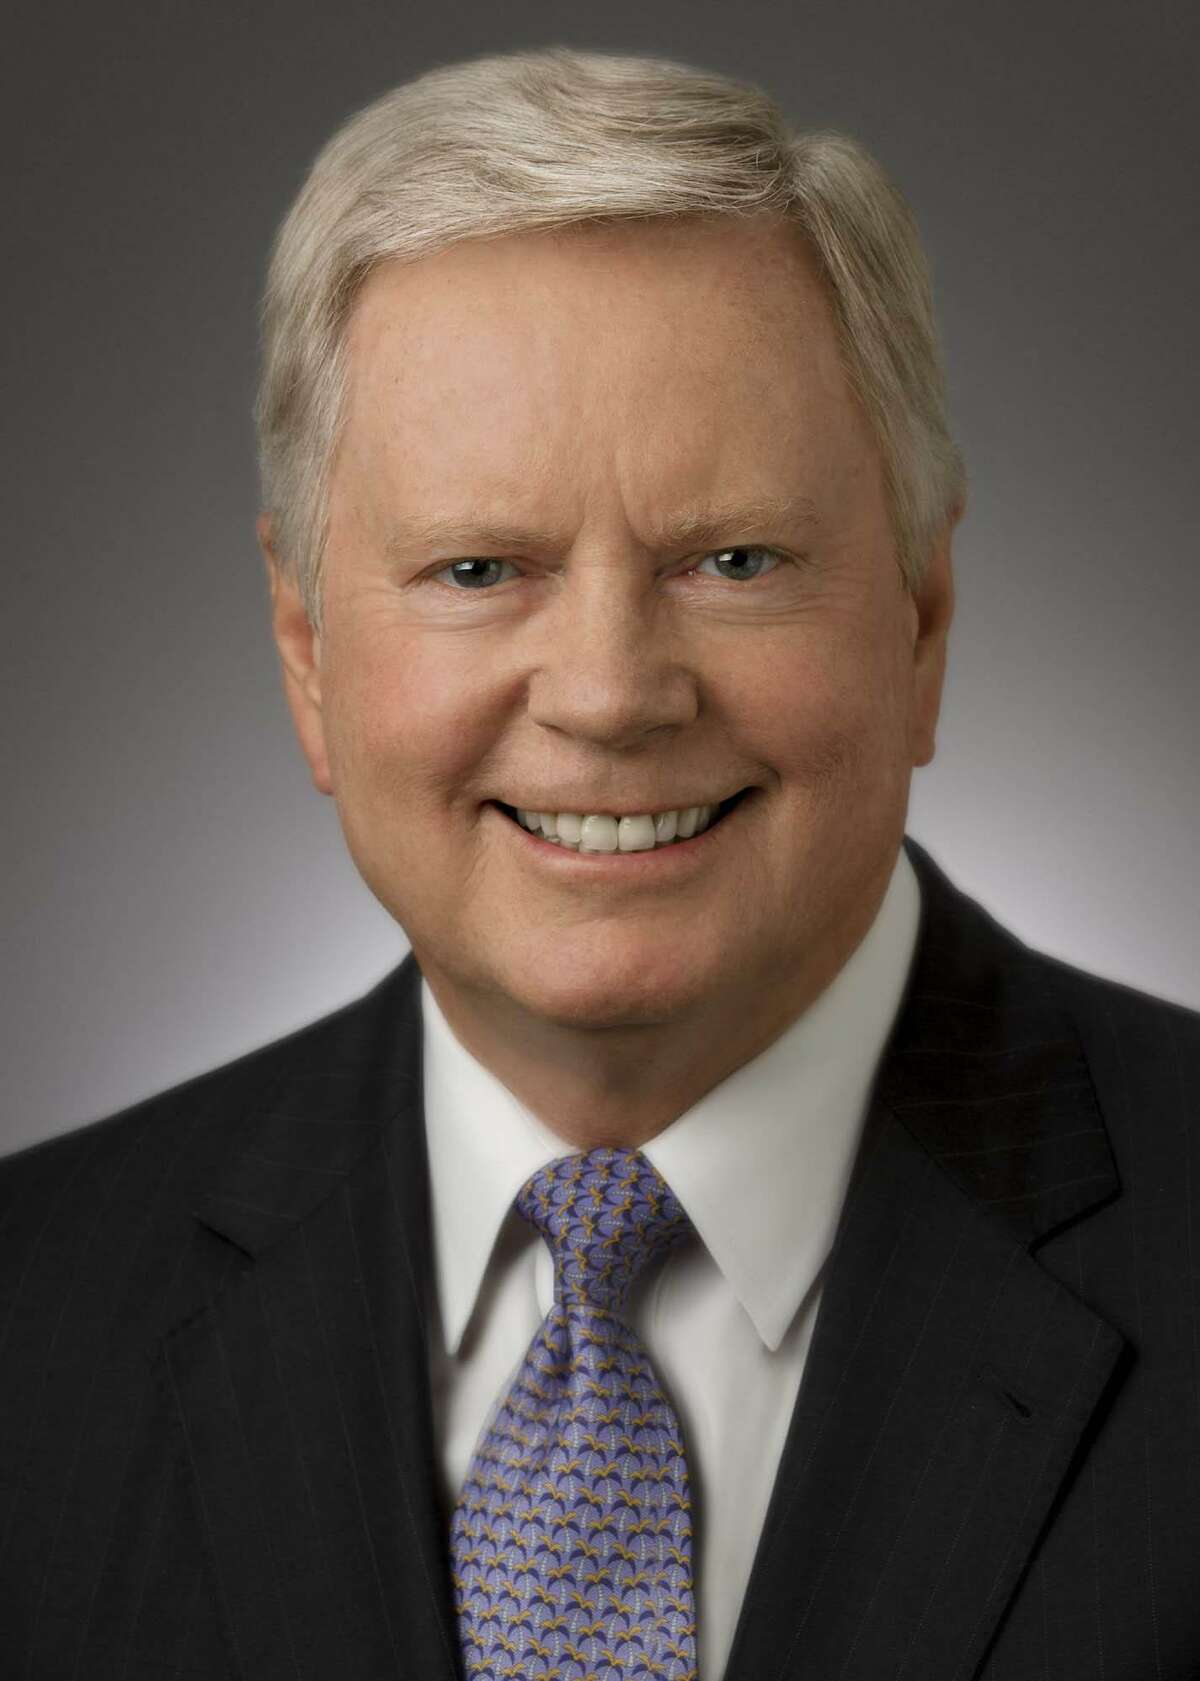 Galen Cobb is vice president of industry relations at Halliburton and chairman of the National Ocean Industries Association